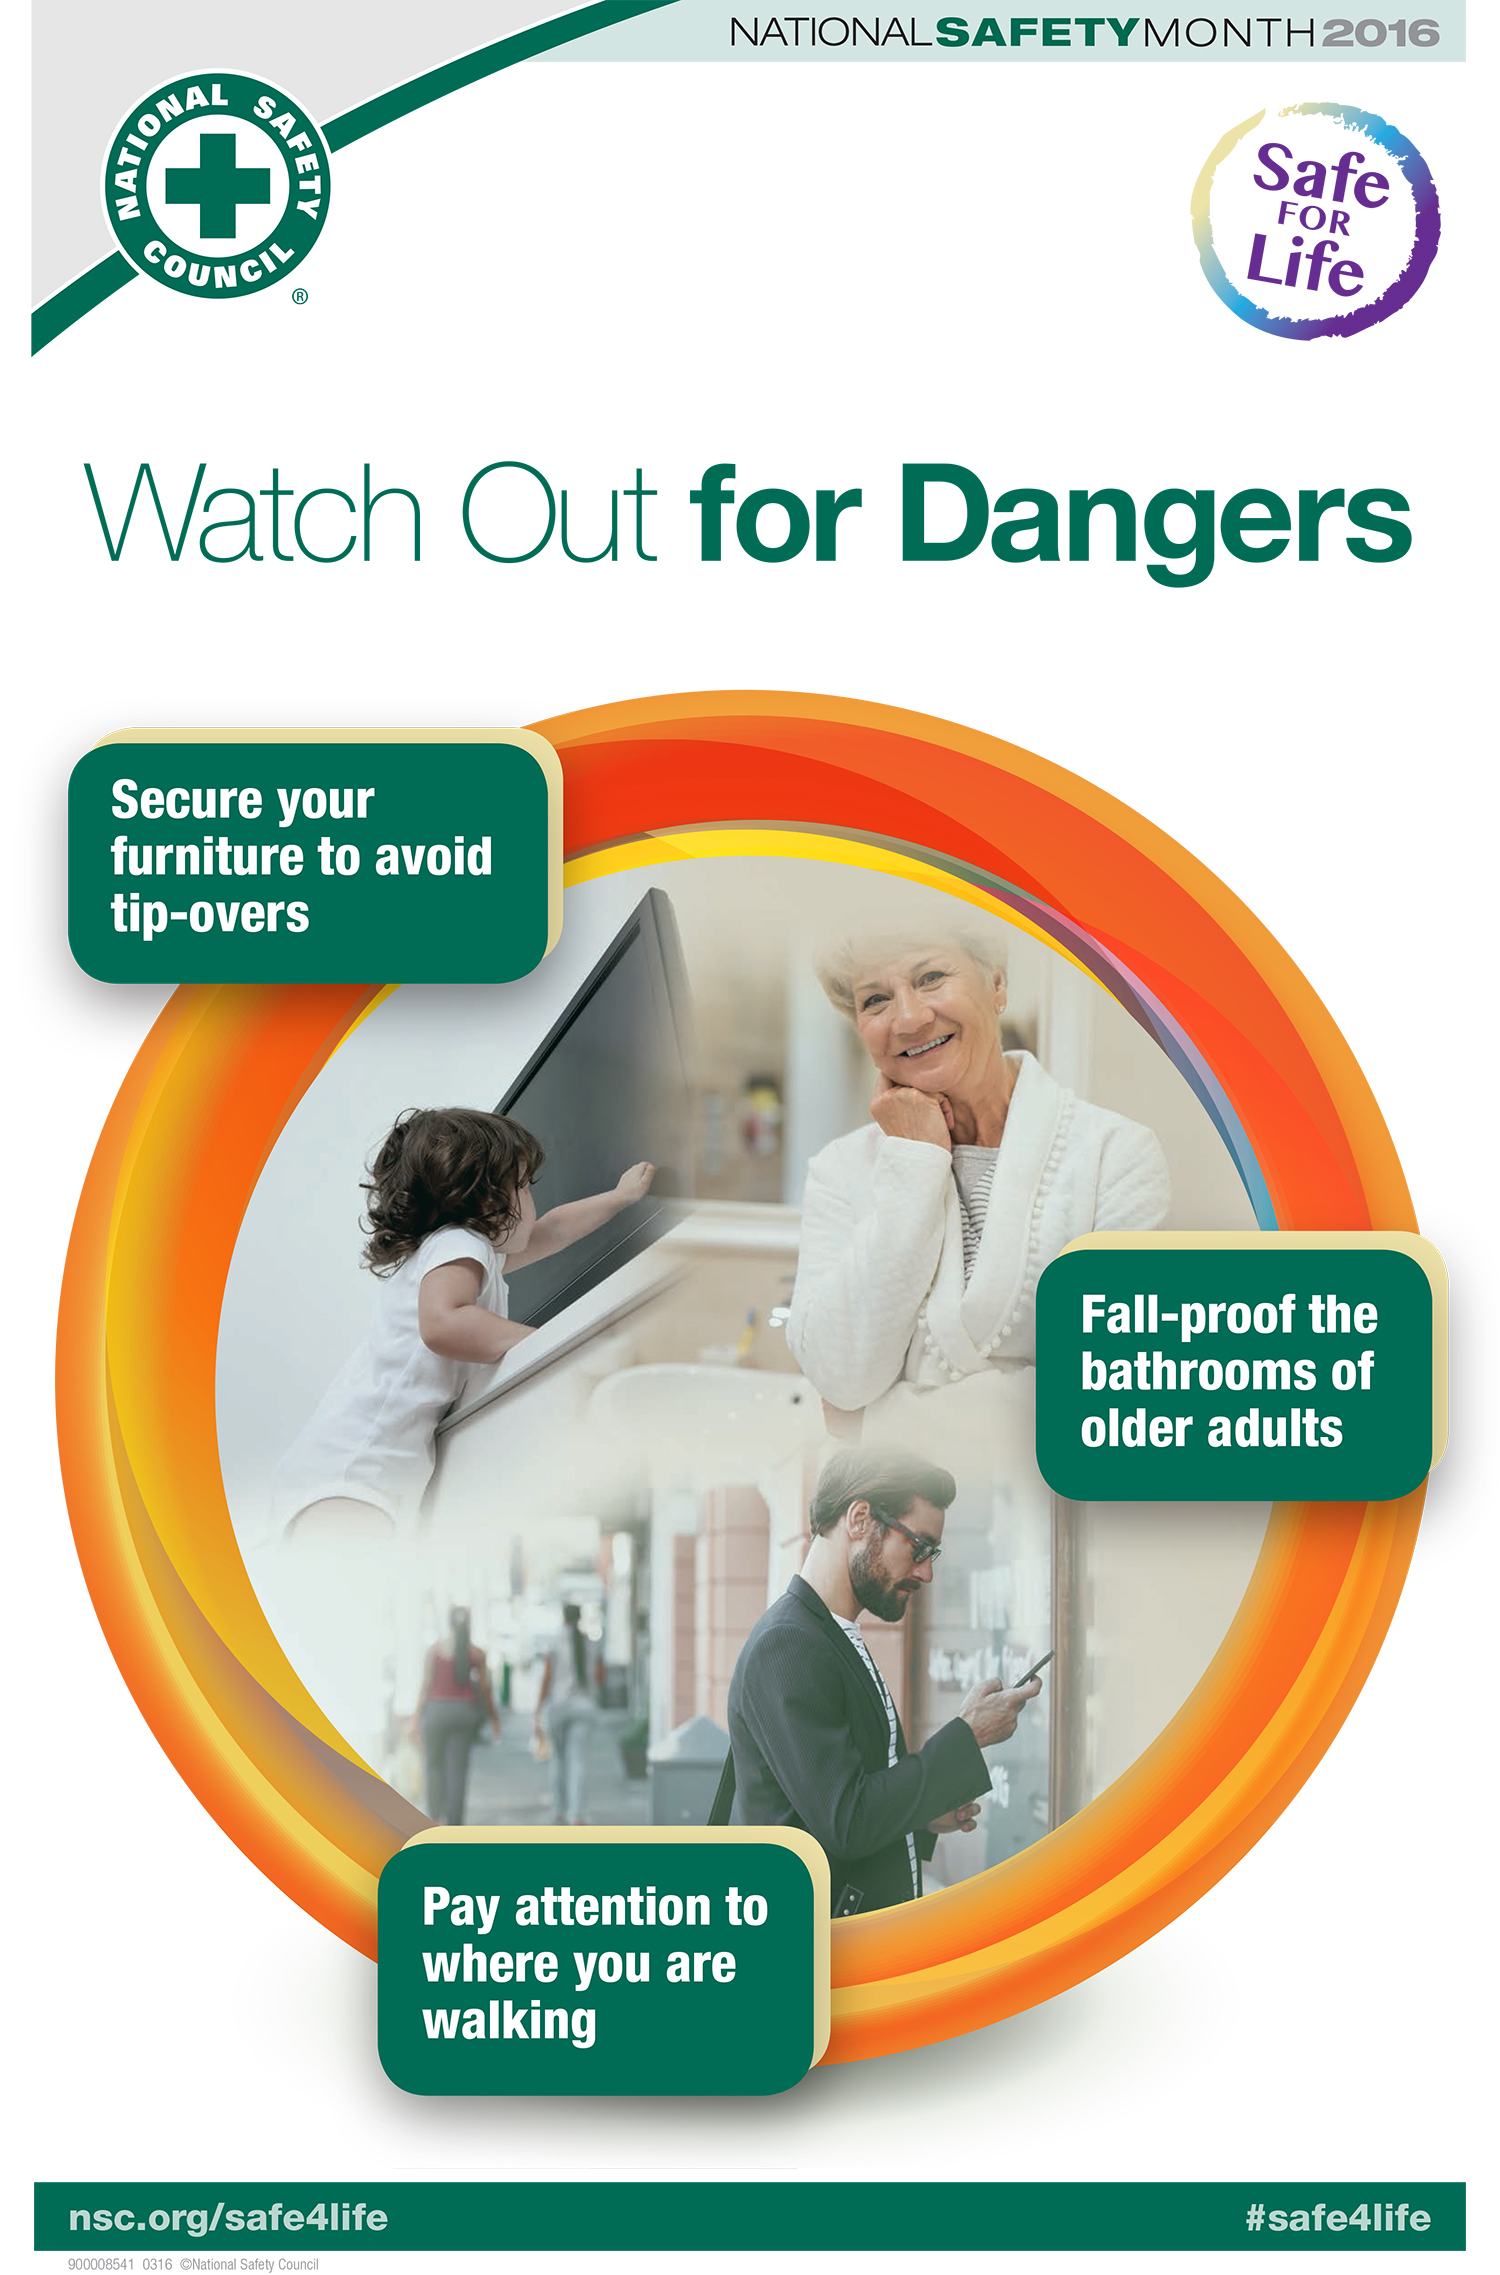 Watch Out for Dangers  Secure your furniture to avoid tip-overs Fall-proof the bathrooms of older adults Pay attention to where you are walking